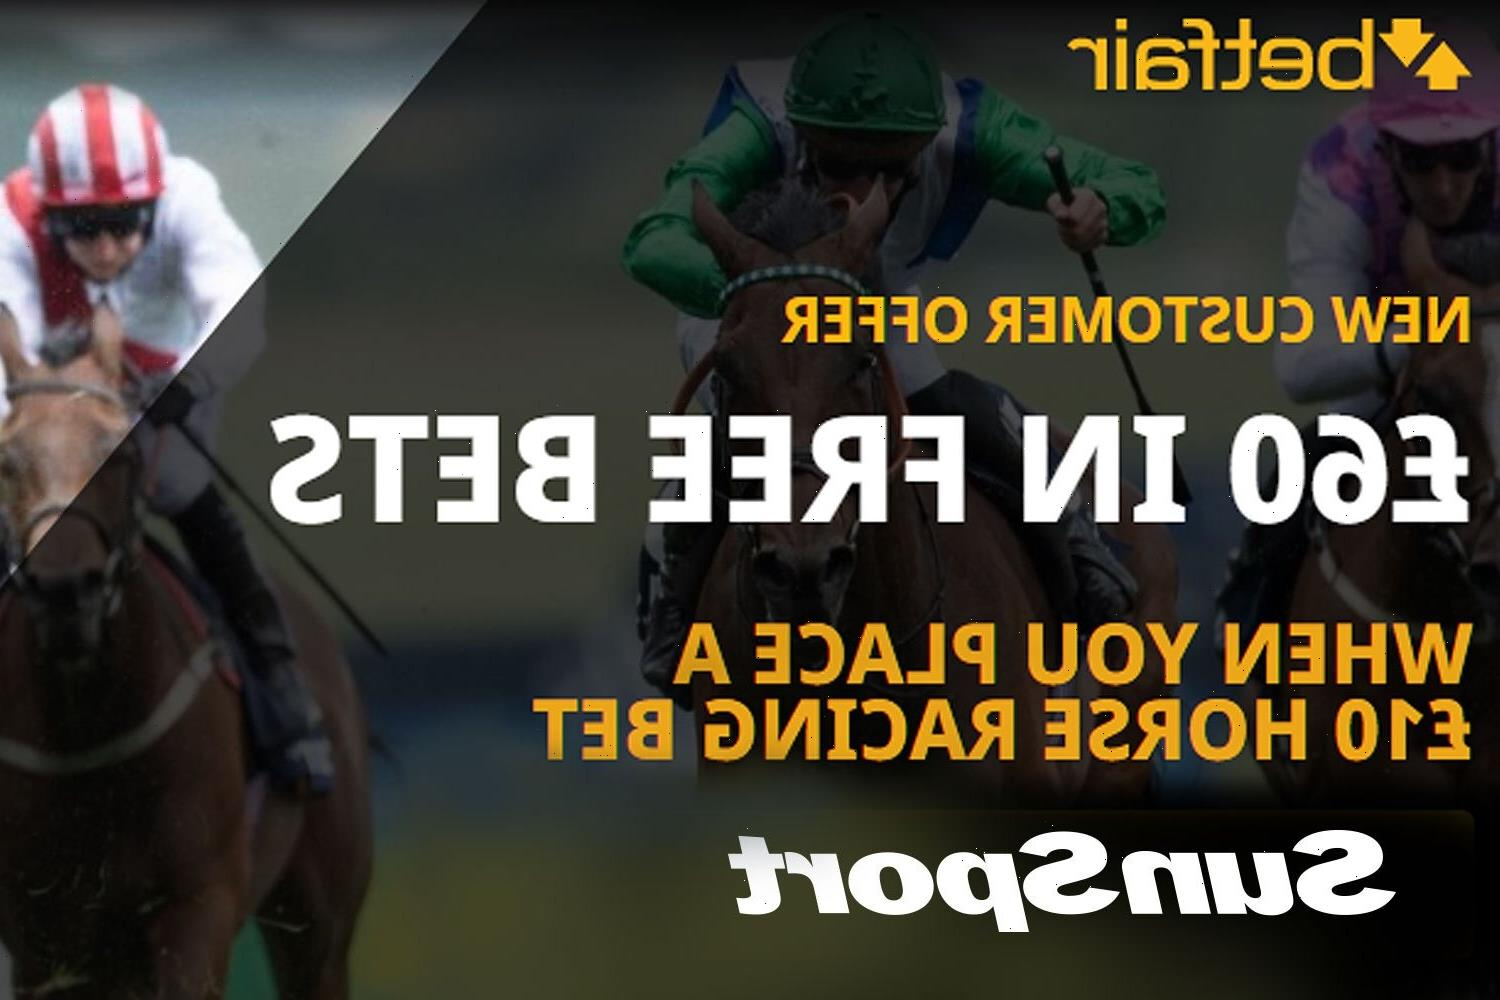 Bet £10, get £60 in FREE BETS to spend on Horse Racing with Betfair special offer